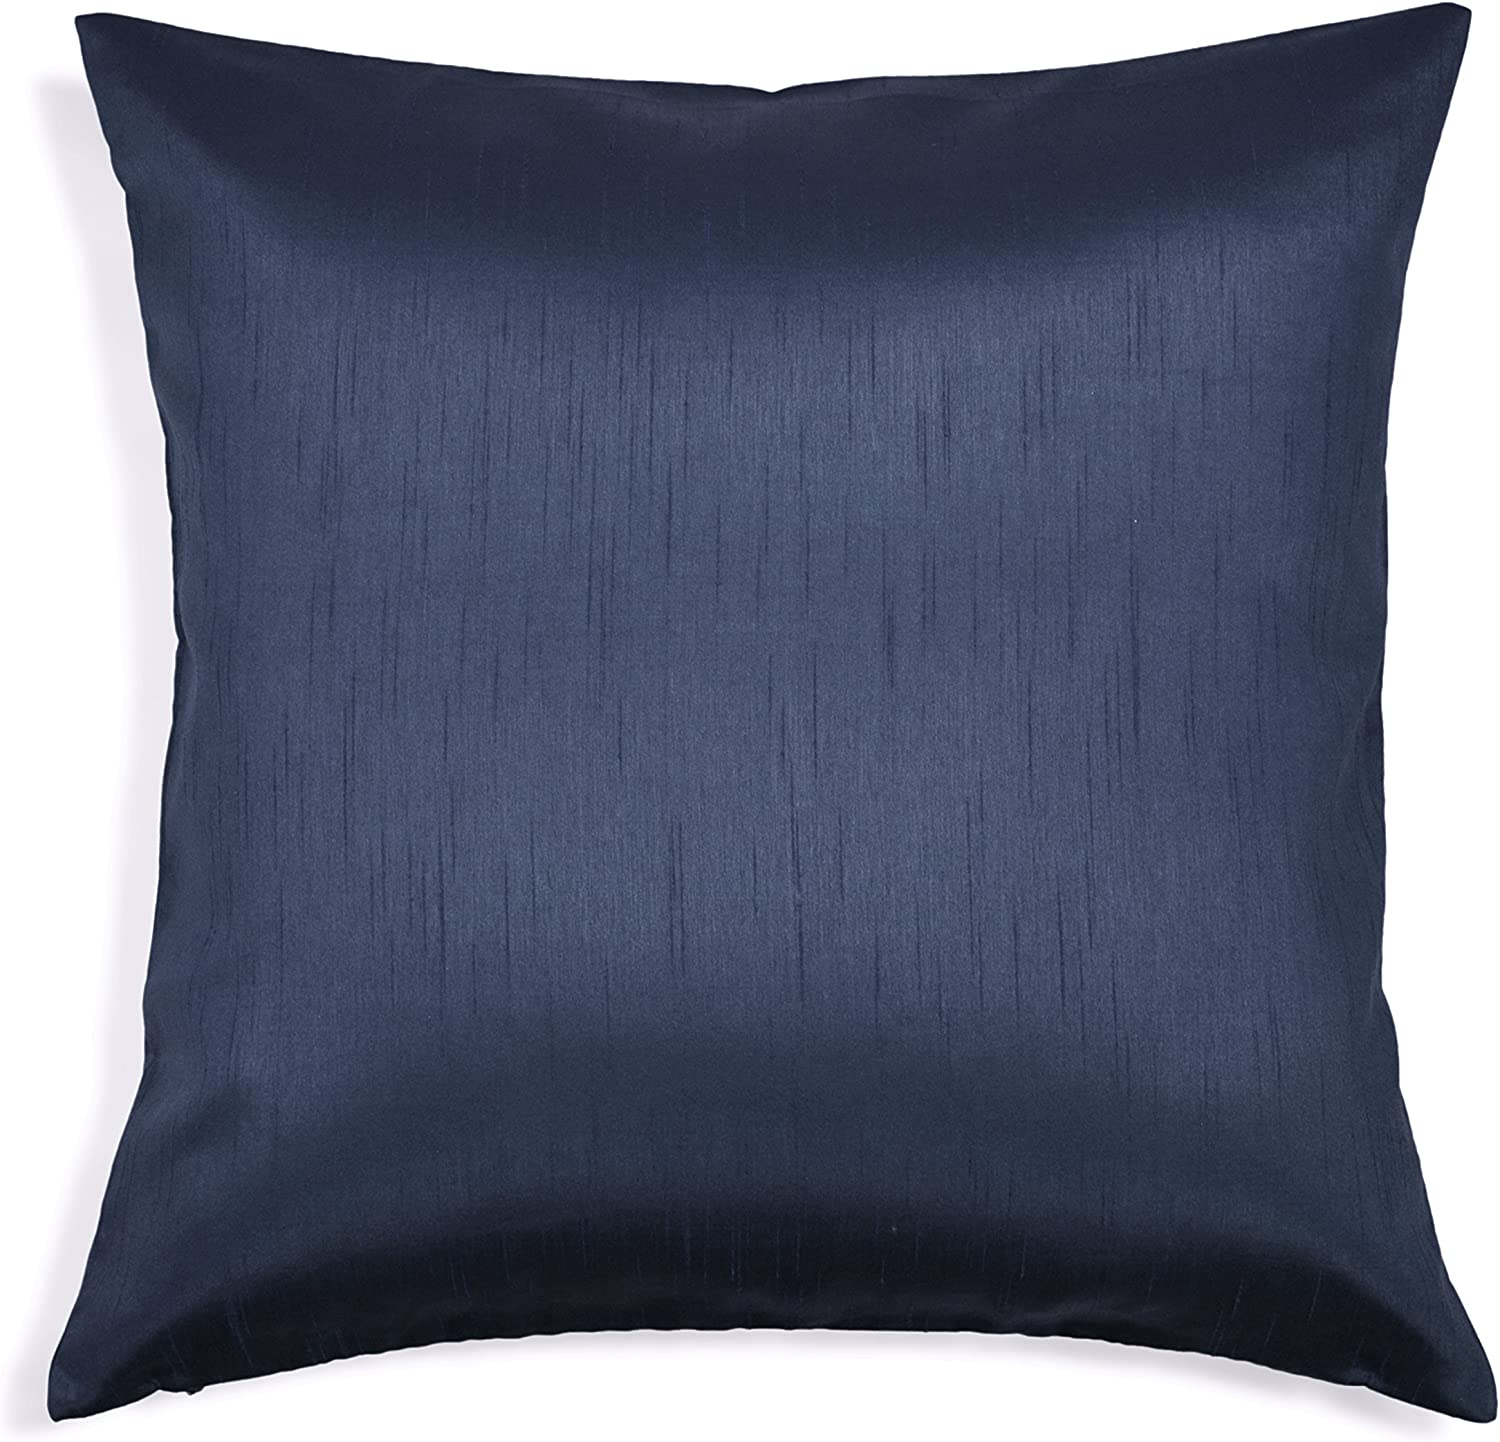 Aiking Home Solid Faux Silk Euro Sham Pillow Cover Zipper Closure 26 By 26 Inches Navy Home Kitchen